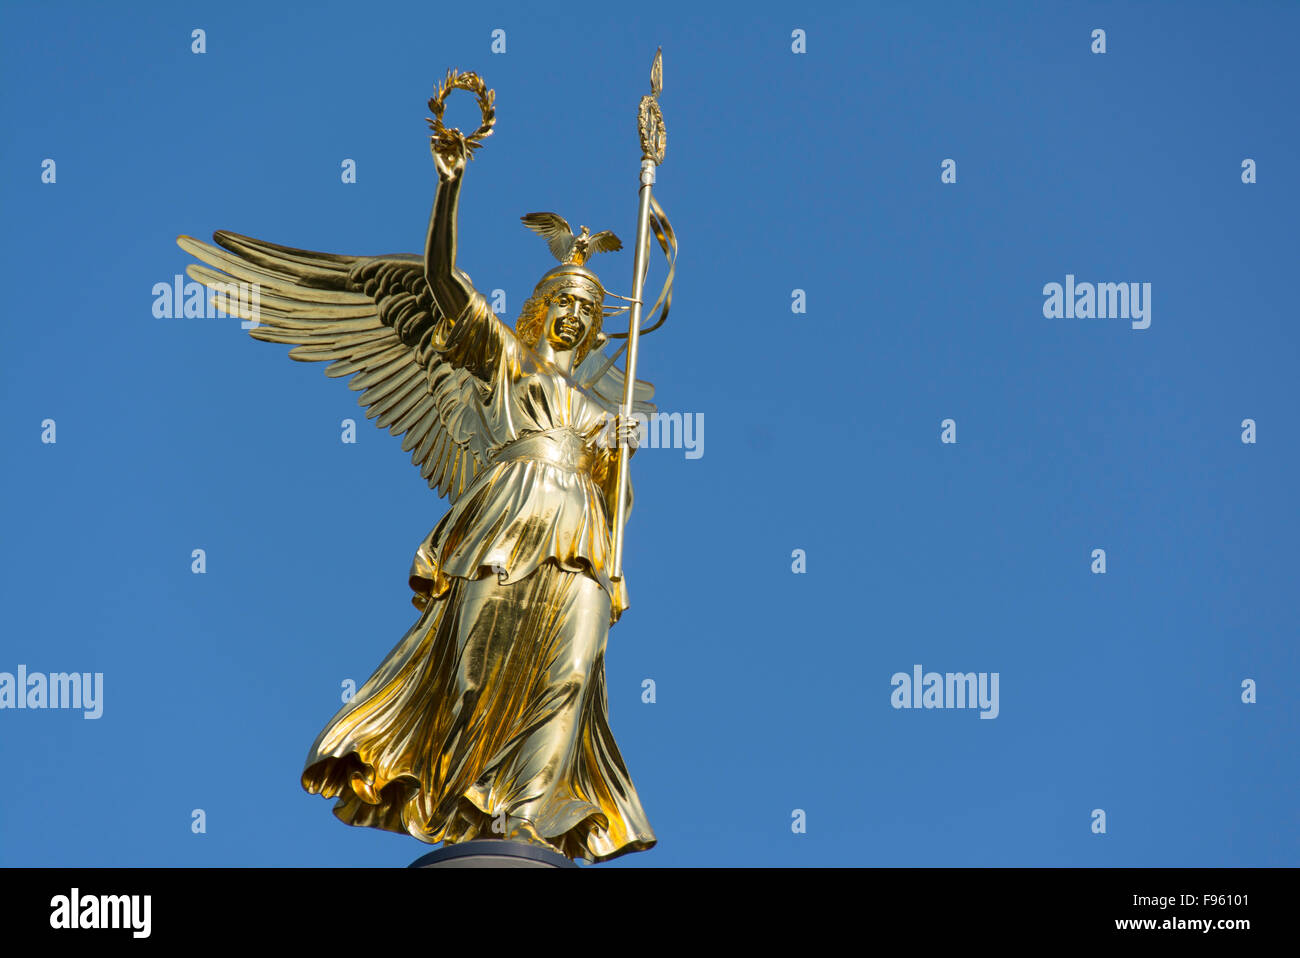 Golden Statue atop the Victory Column or  Siegessaule, Designed by Heinrich Strack, Berlin, Germany Stock Photo